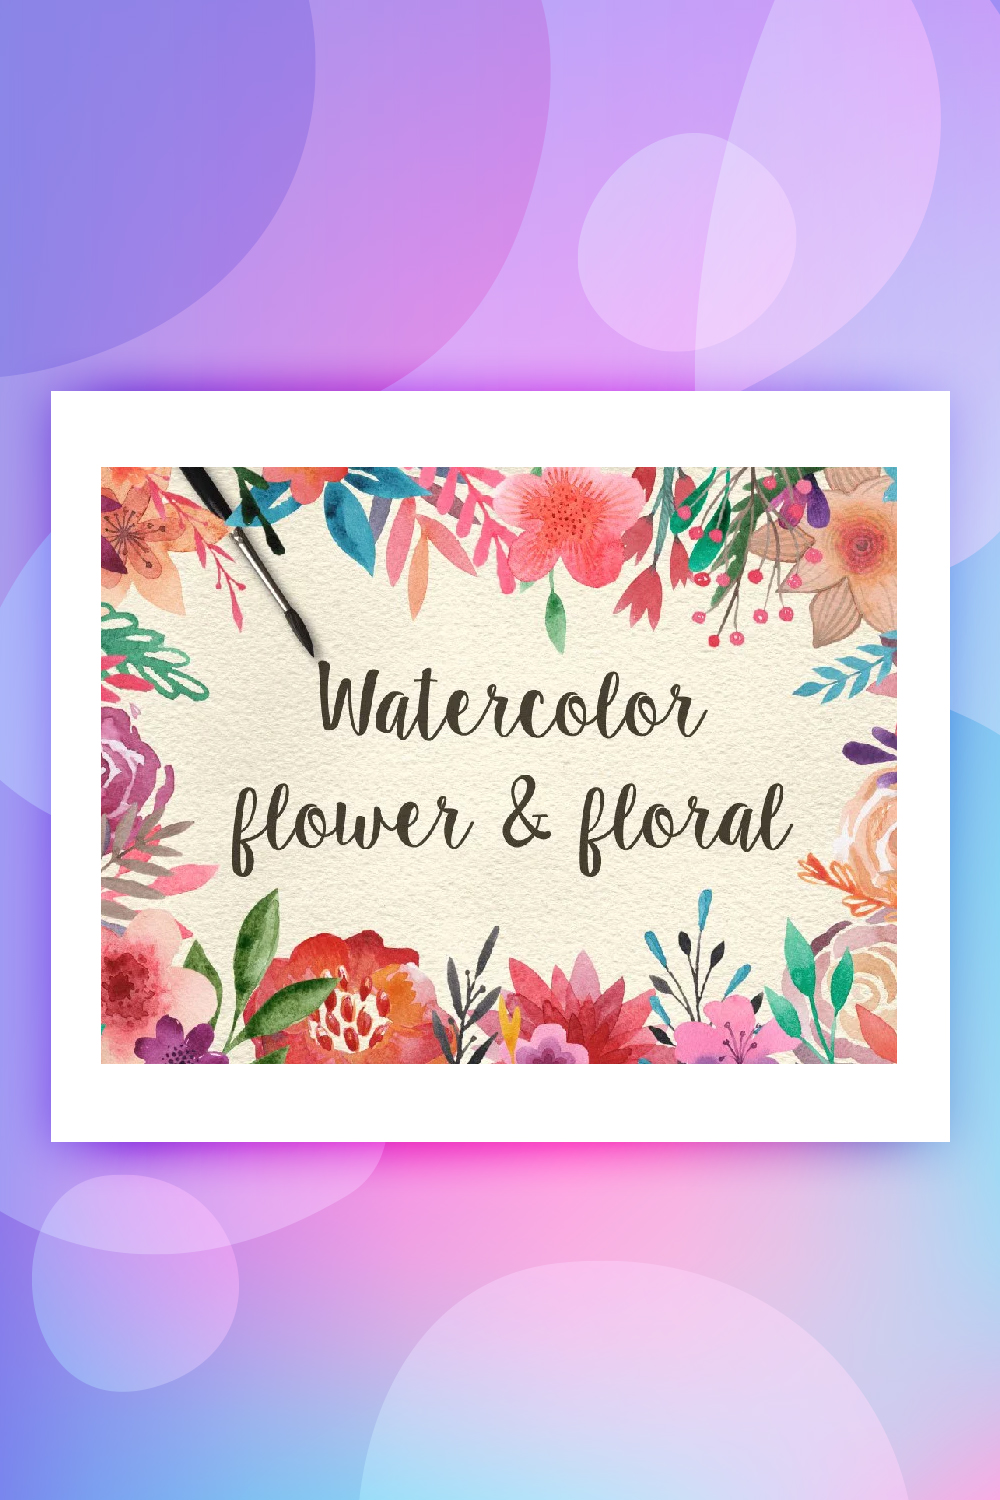 159 Watercolor flowers and florals Illustration